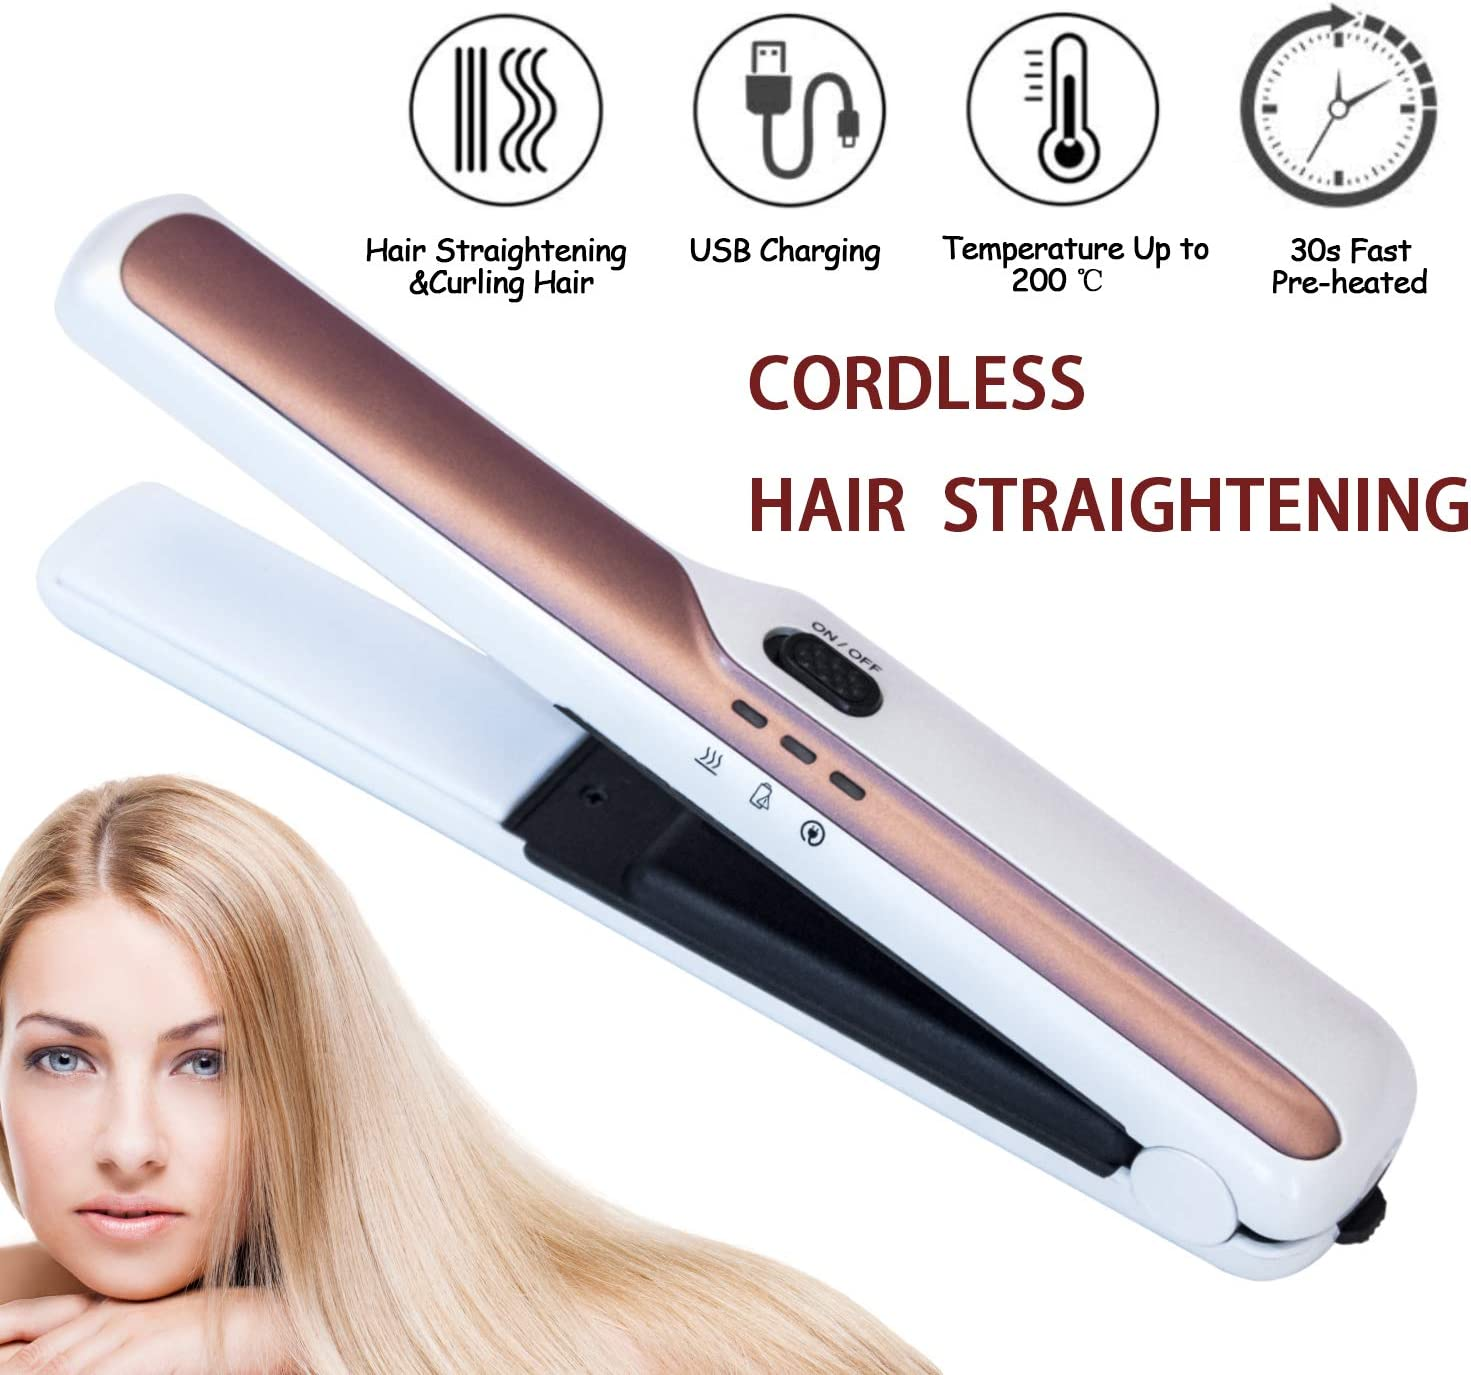 Cordless Travel Hair Straightener and Curler 2 in 1 Ceramic Flat Iron Mini Travel Portable USB Rechargeable Hair Straightening for Short&Shin Hair